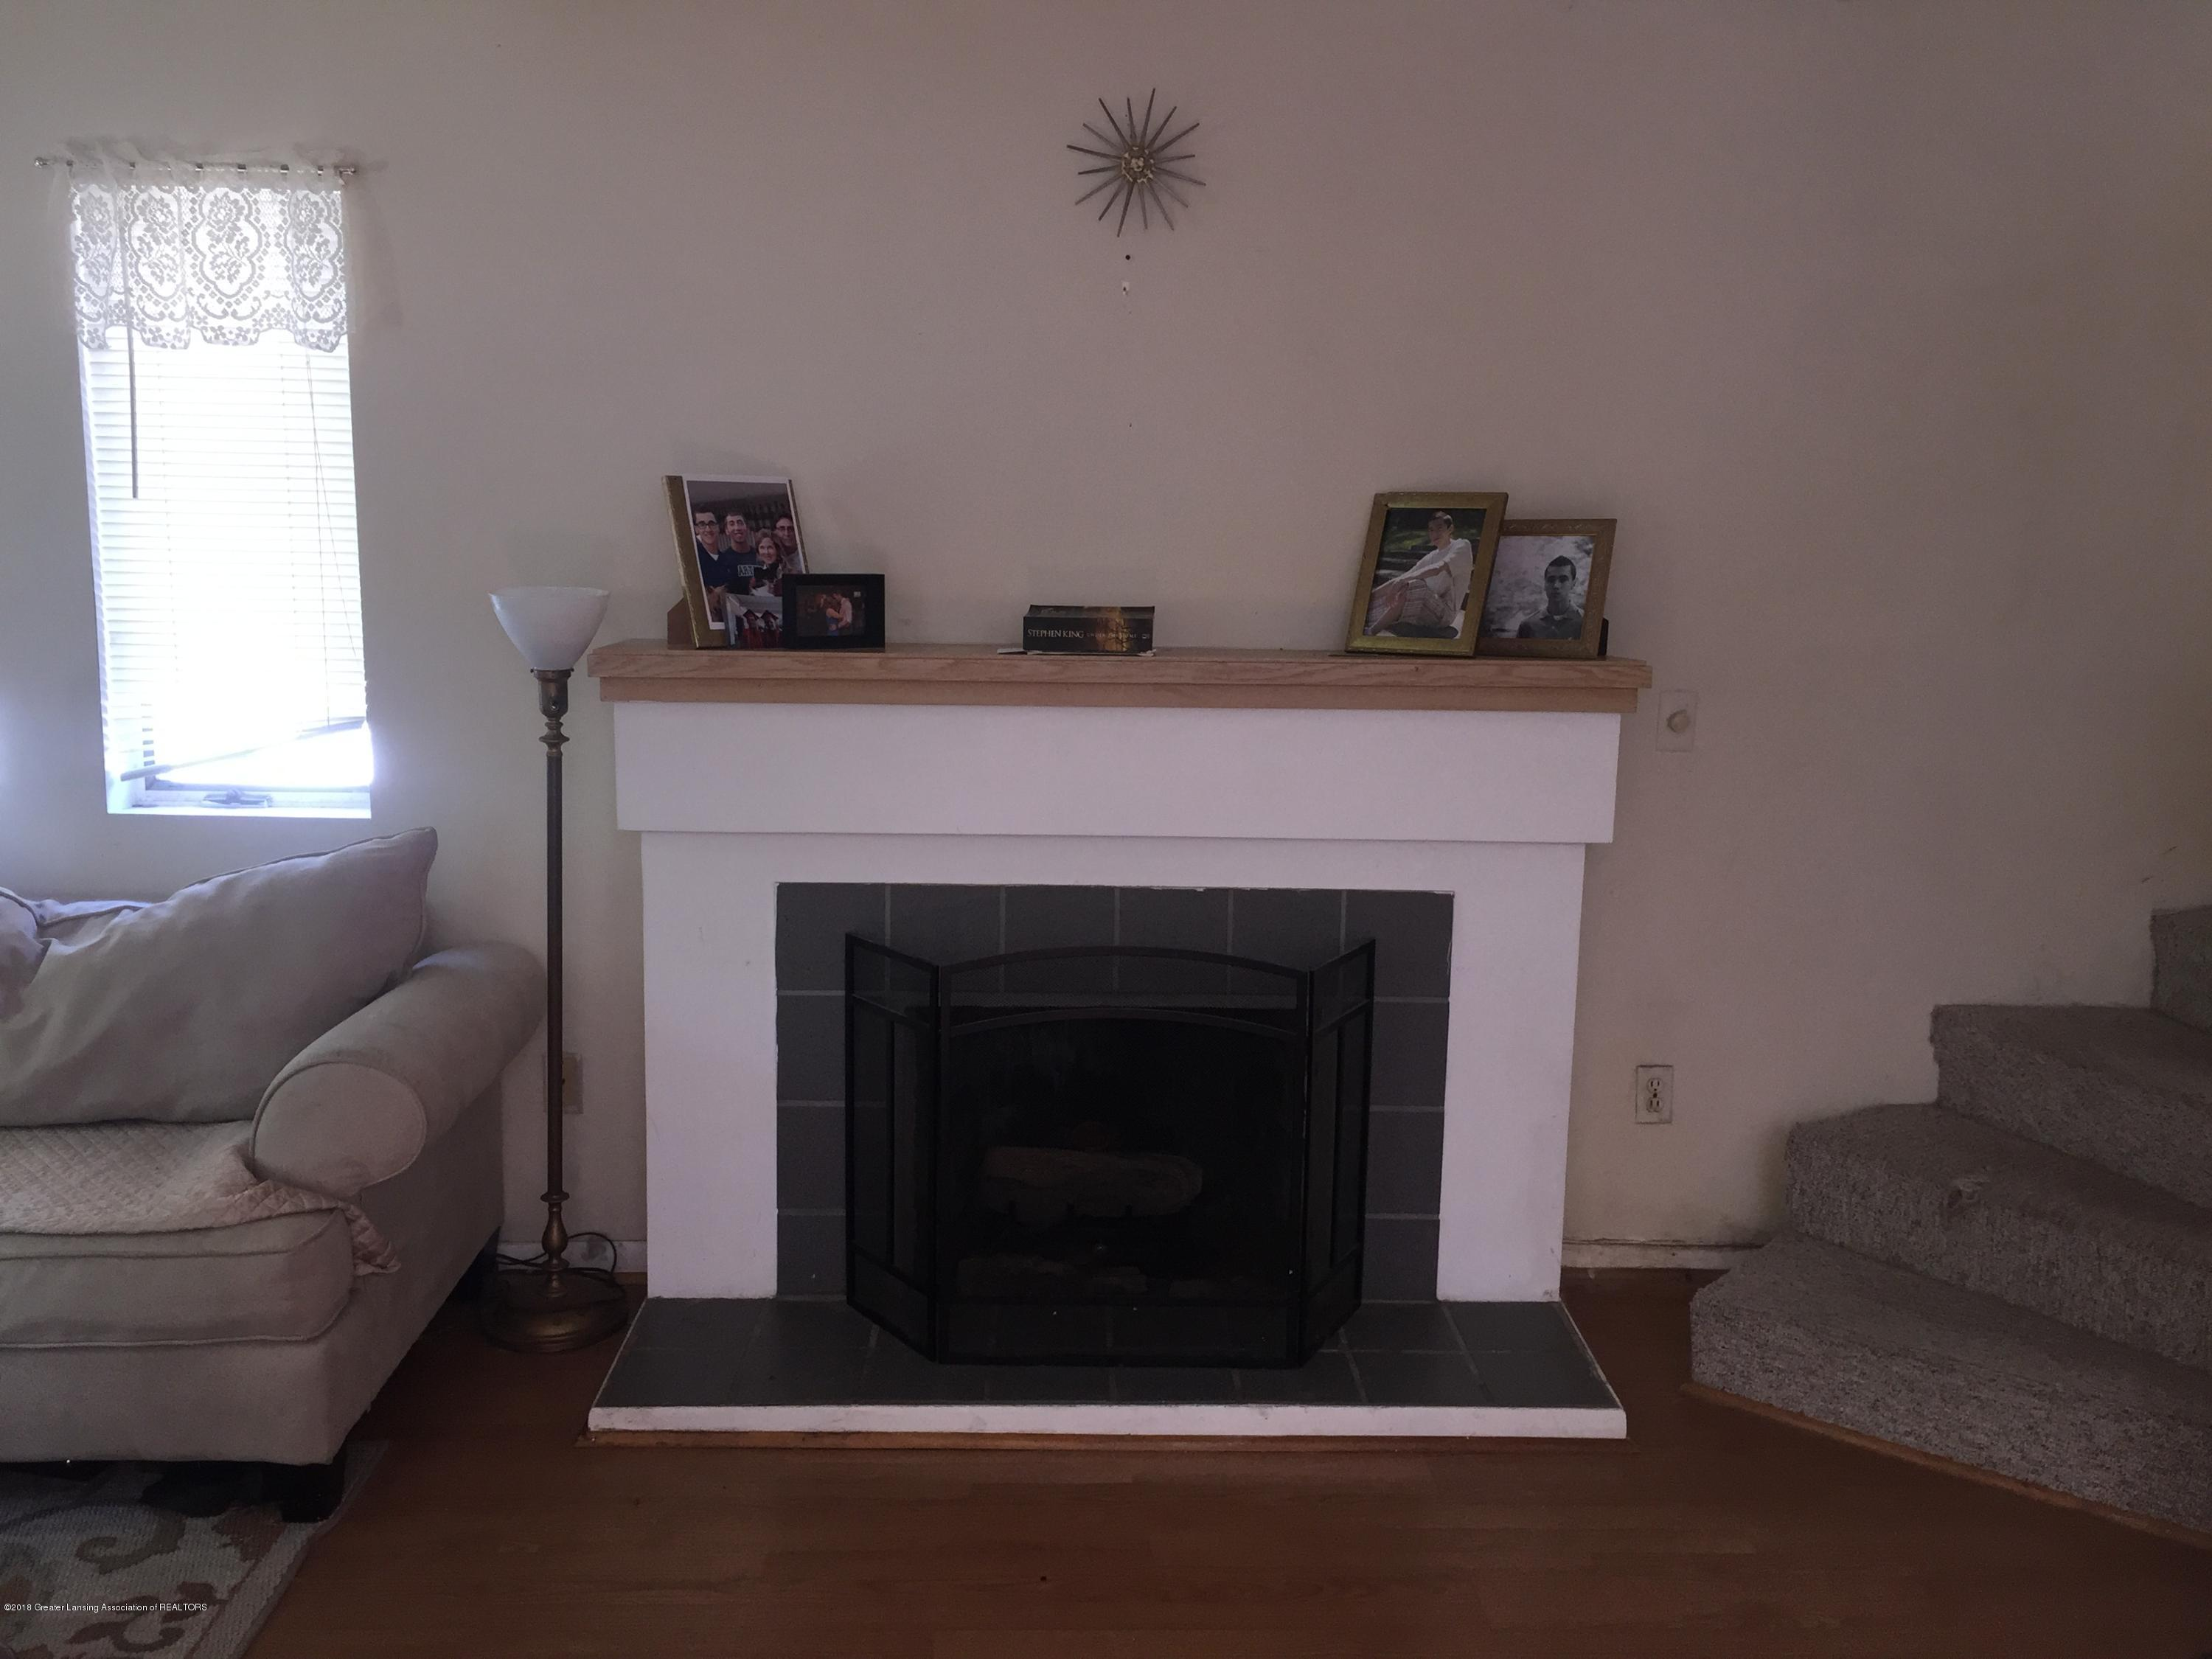 513 S Clemens Ave - Fireplace - 5